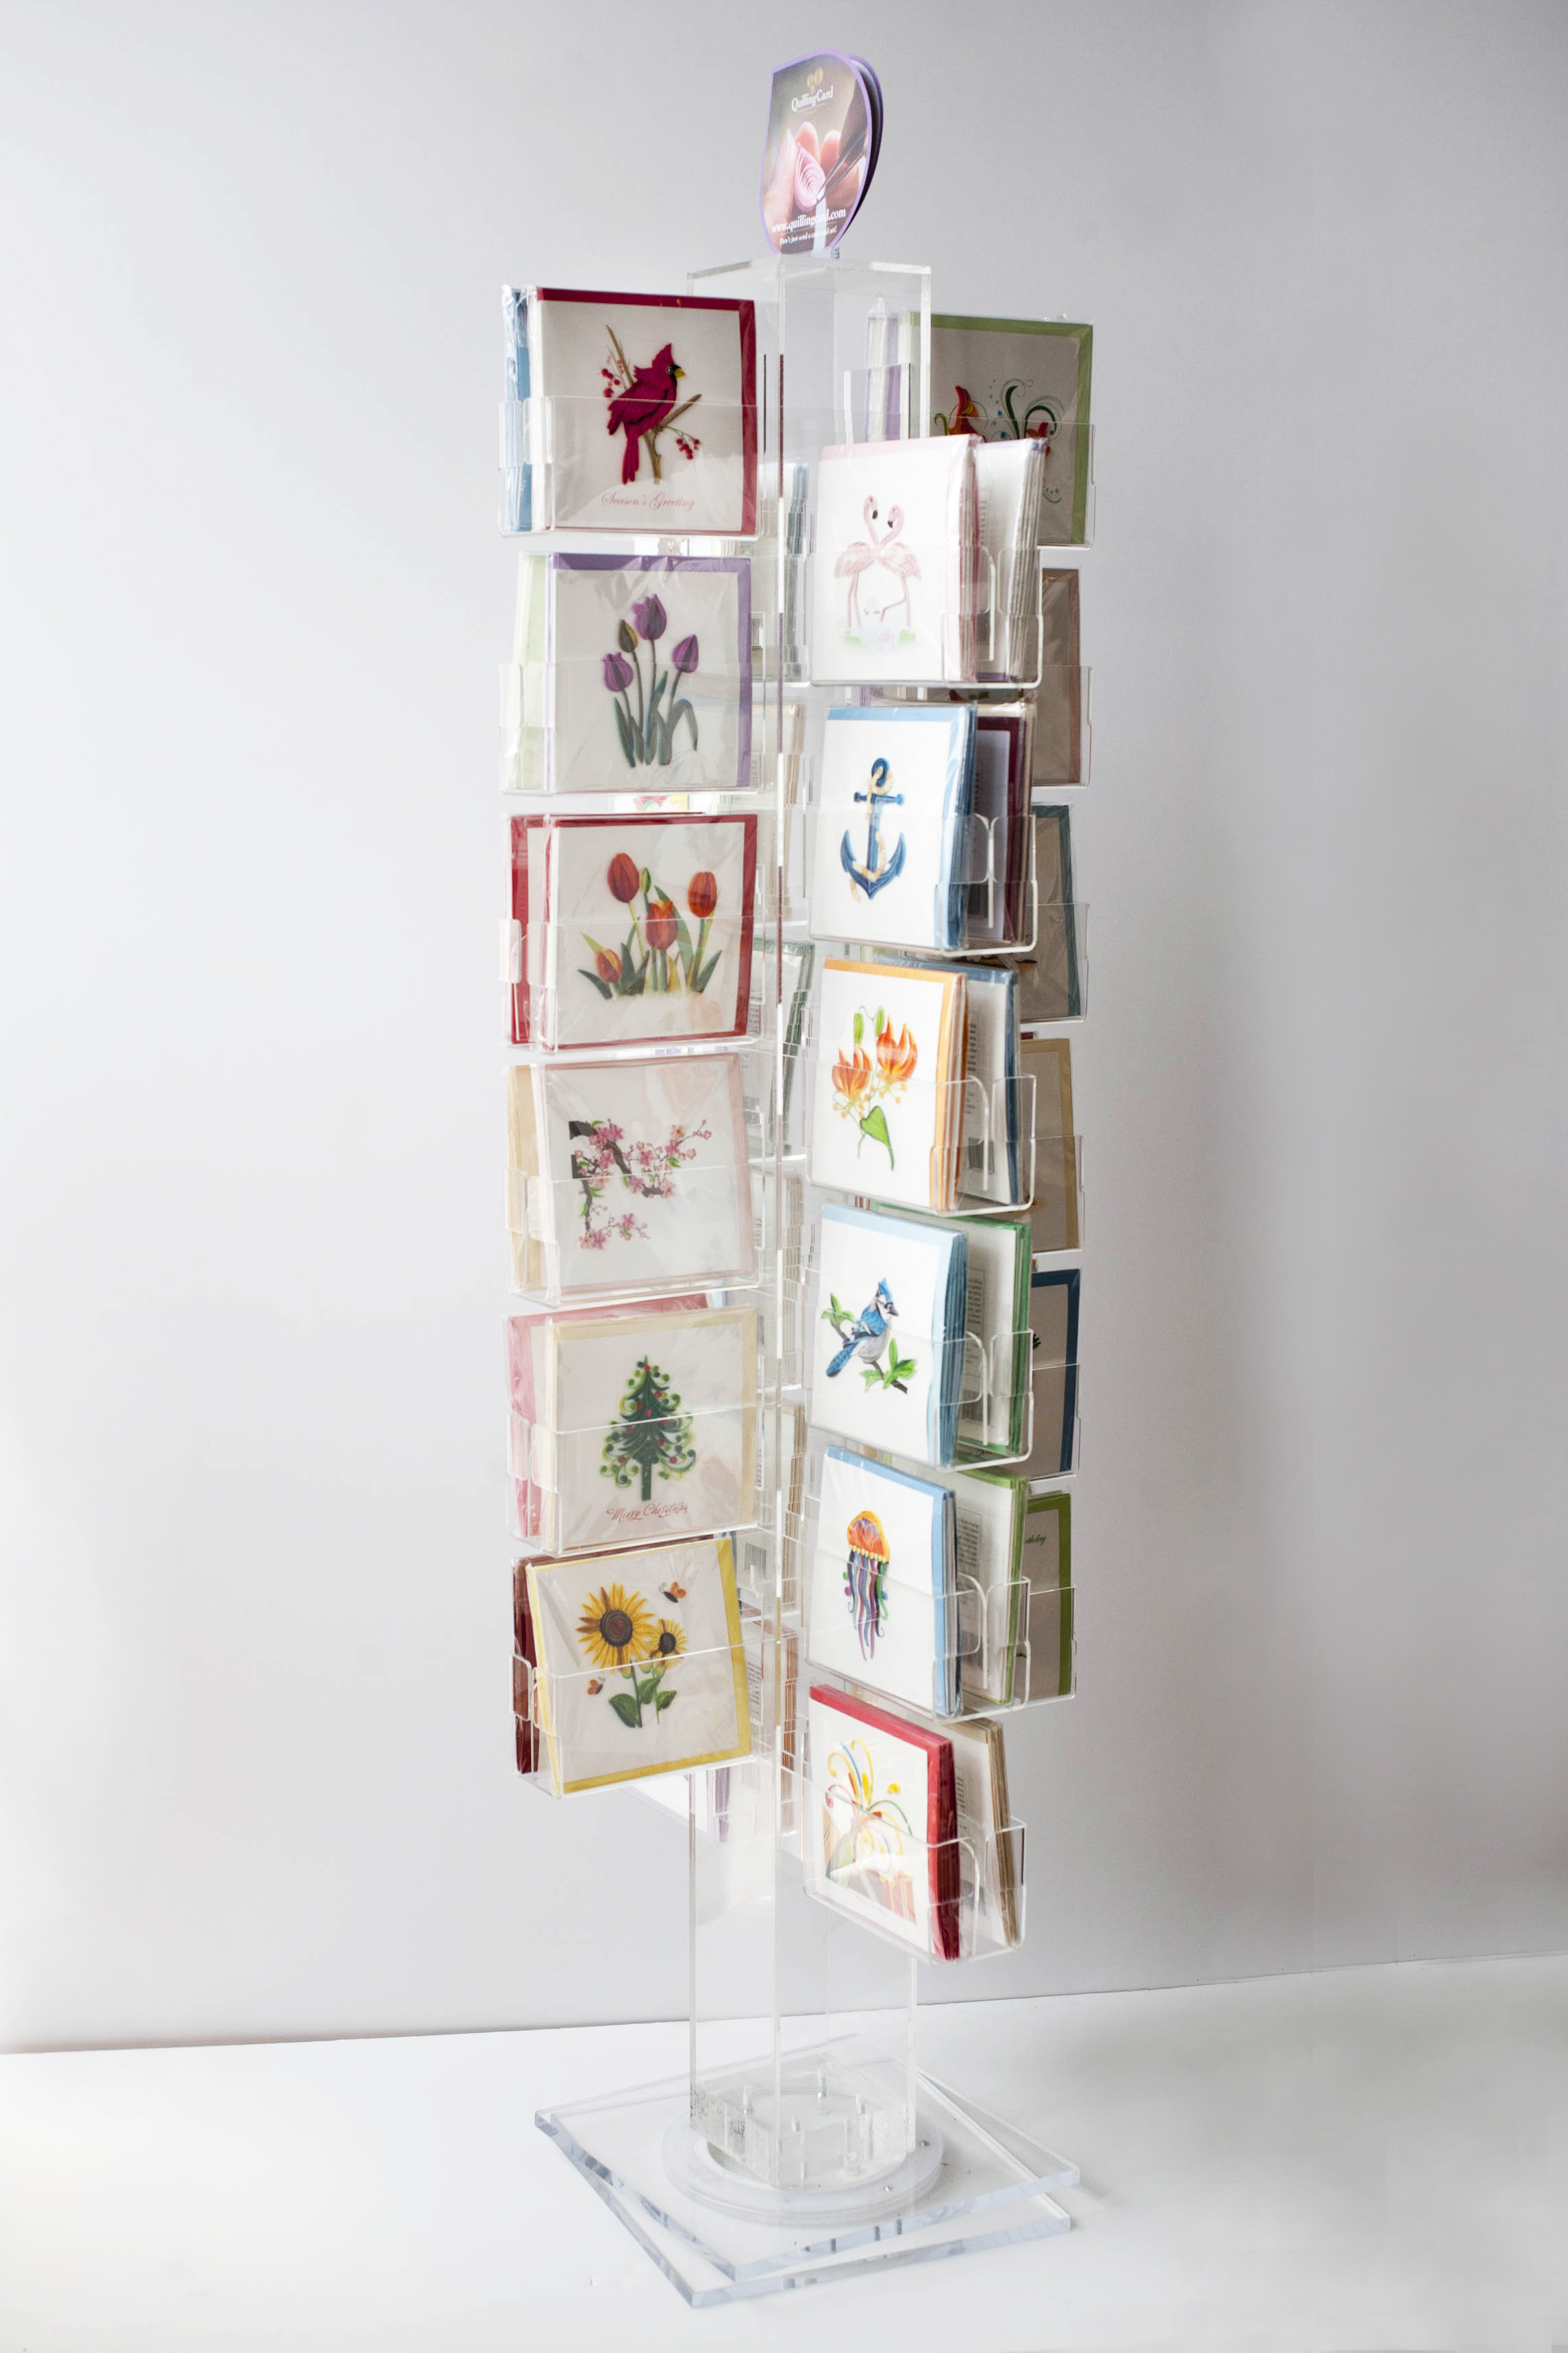 24 pocket greeting card display united products llc 24 pocket greeting card display kristyandbryce Images